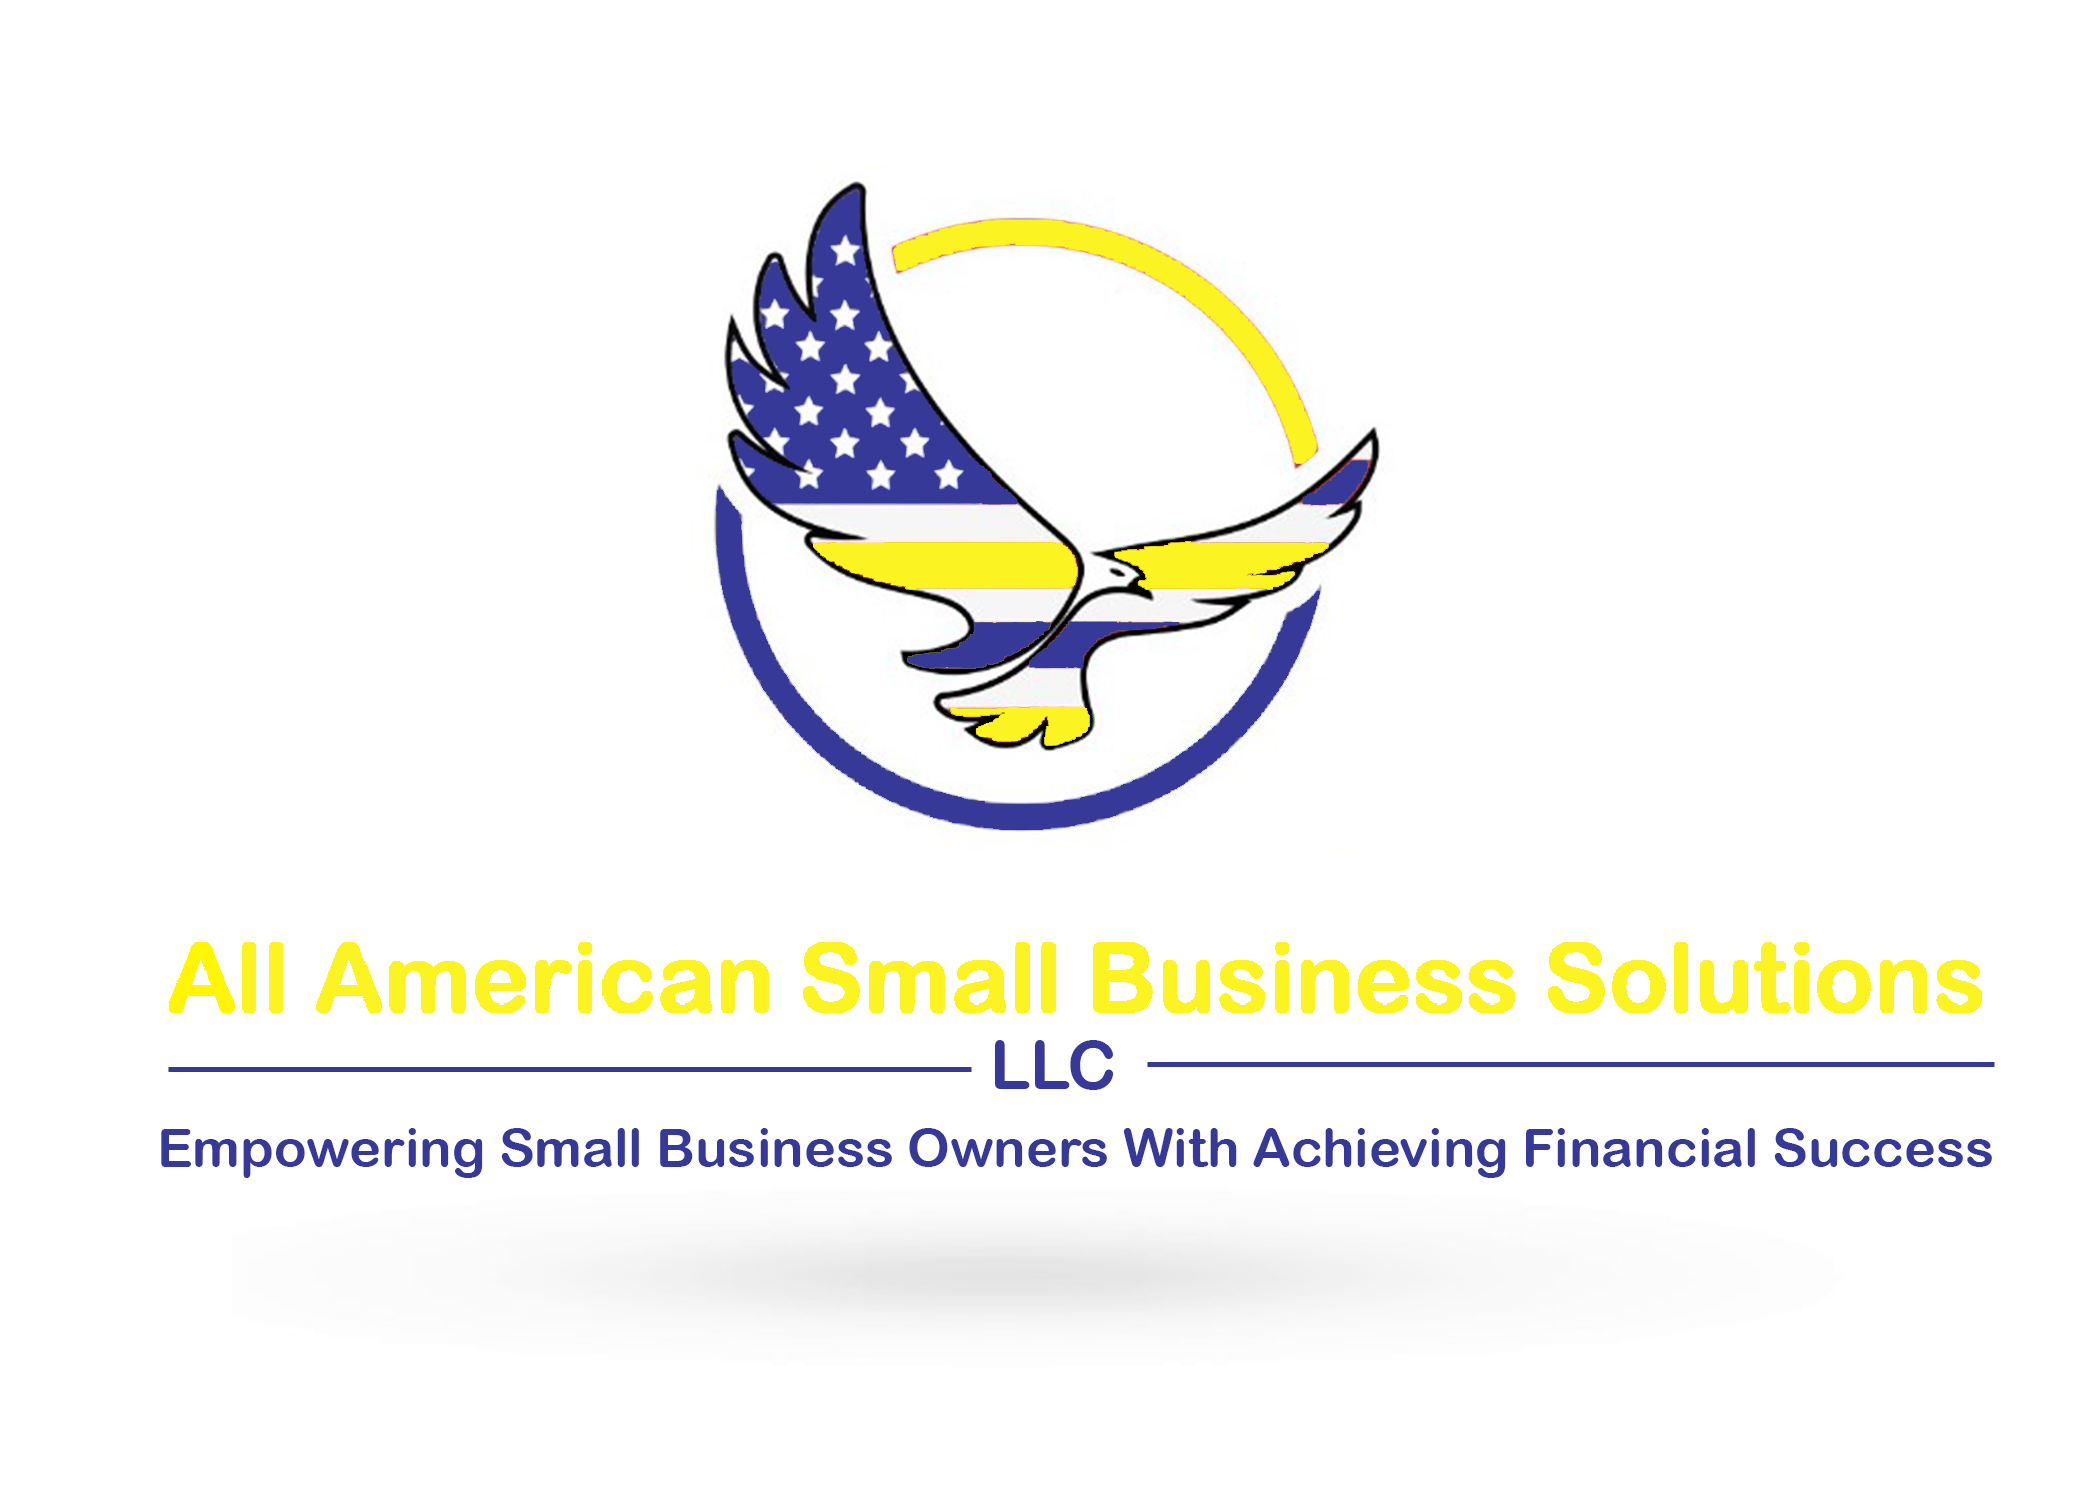 All American Small Business Solutions